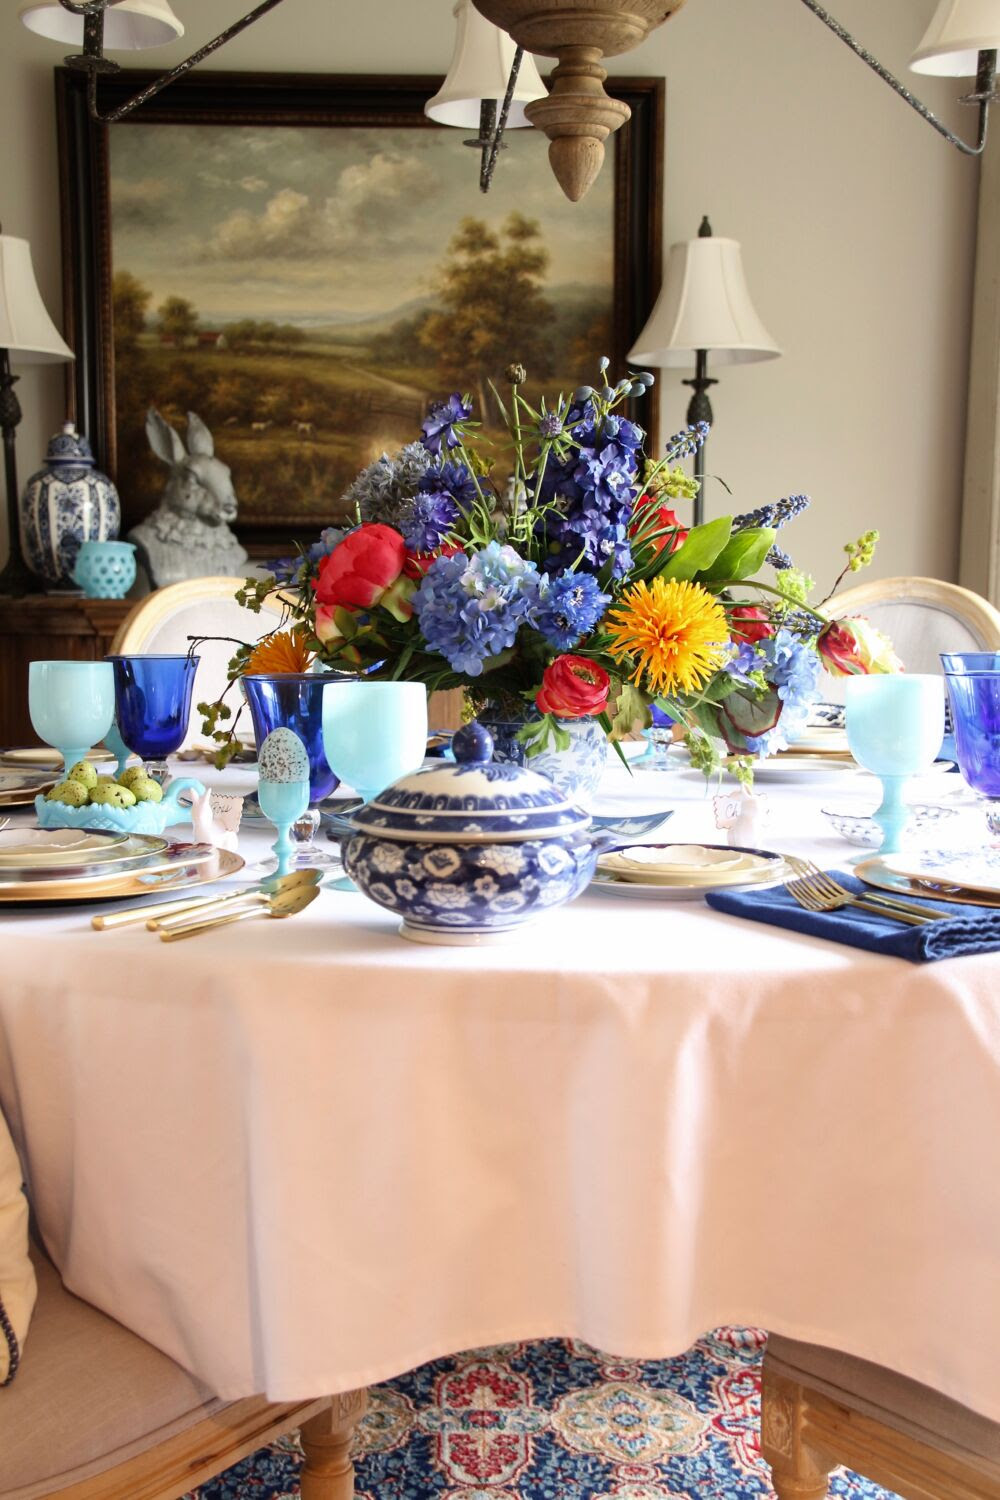 Setting the Table for Easter Dinner: A Colorful Floral ...